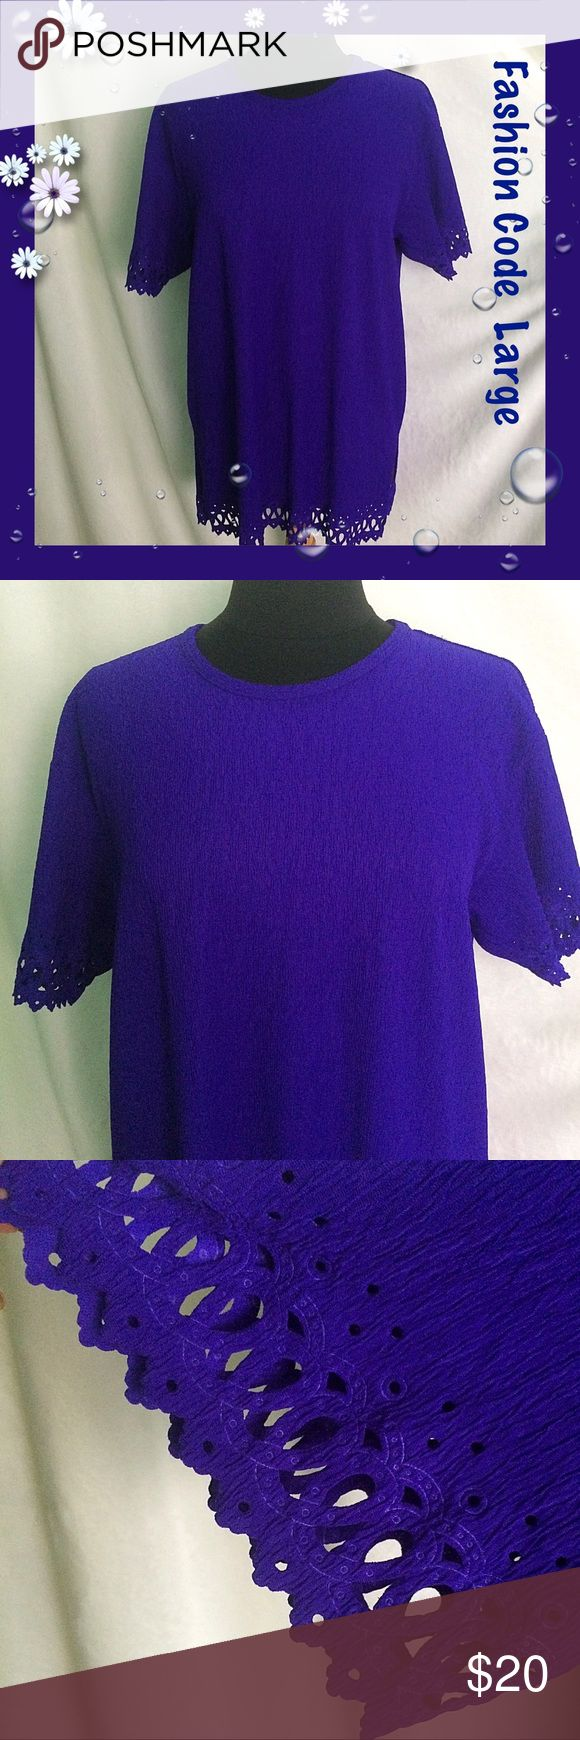 "Fashion Code / Large / Purple Short Sleeve Top Fashion Code / Purple Short Sleeve Crinkle Top  / Cutouts in sleeves & hemline / No tag but probably polyester. Approx Measurements:  Bust 44"" Length  30""                                     FANTASTIC COLOR & VERY COMFY!  Please feel free to make an offer - Enjoy BIG discounts on bundles & save $$$ on shipping! I package safely & ship fast.  TY & Happy Poshing! 💜💜💜 D9 Fashion Code Tops Tunics"